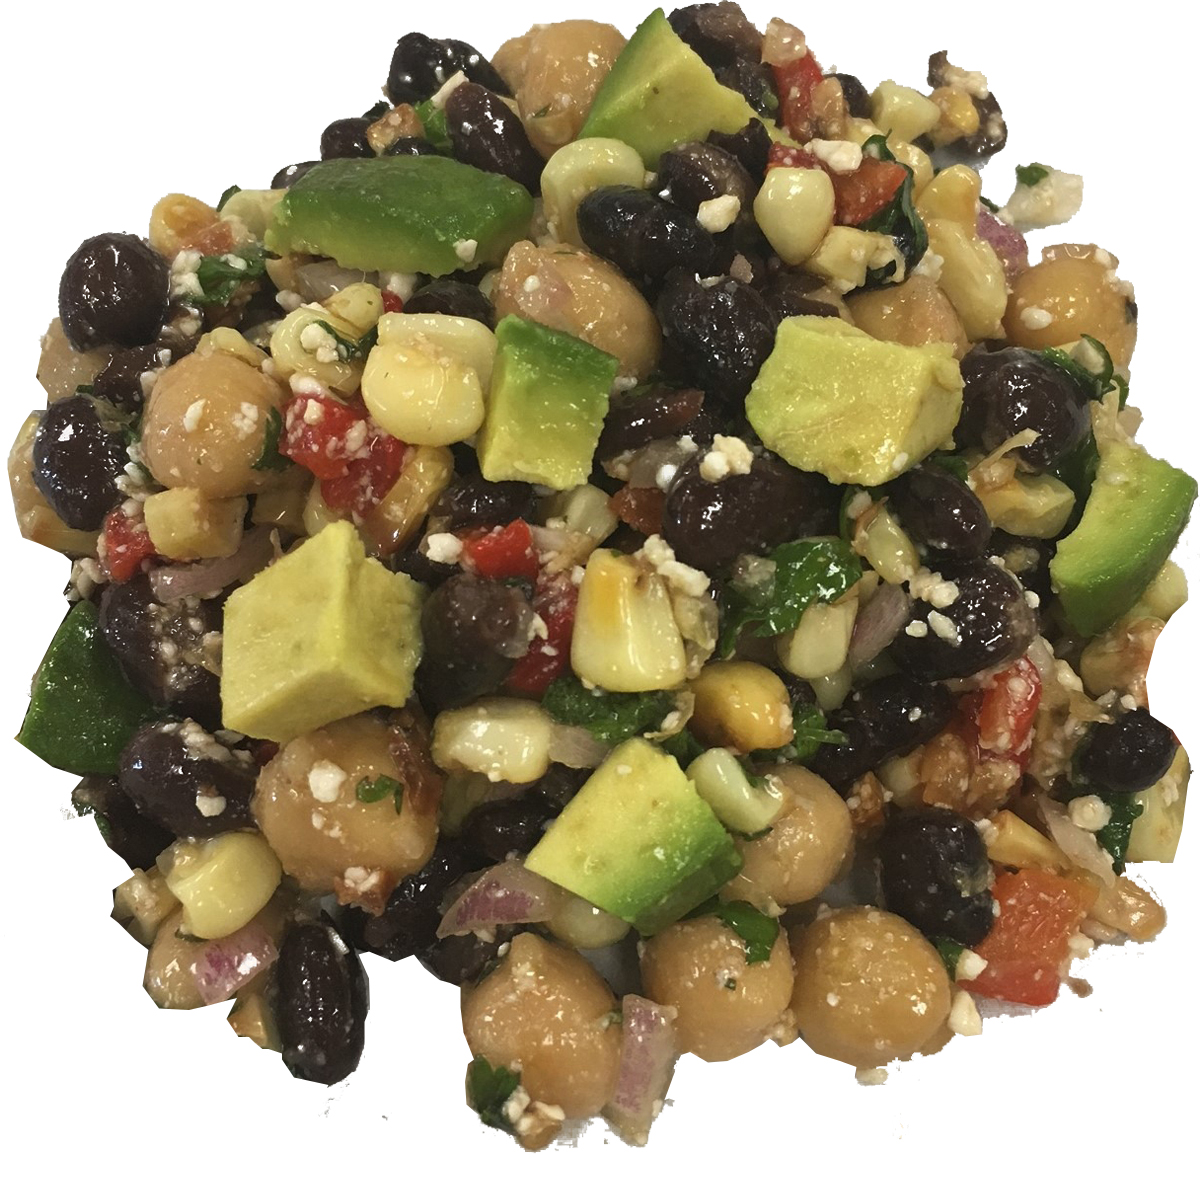 Black Beans with Roasted Sweet White Corn - Protein and amino acid packed low salt black beans and garbanzo beans are tossed with our roasted corn taken from fresh sweet white cobs. We add diced red onion, fresh cilanto and cotija cheese. Then we top it with creamy ripe avocado.Dressing: enfuso mango white balsamic vinegar and enfuso chili cilantro olive oilCalories per serving: 150Price/lb: $10.00